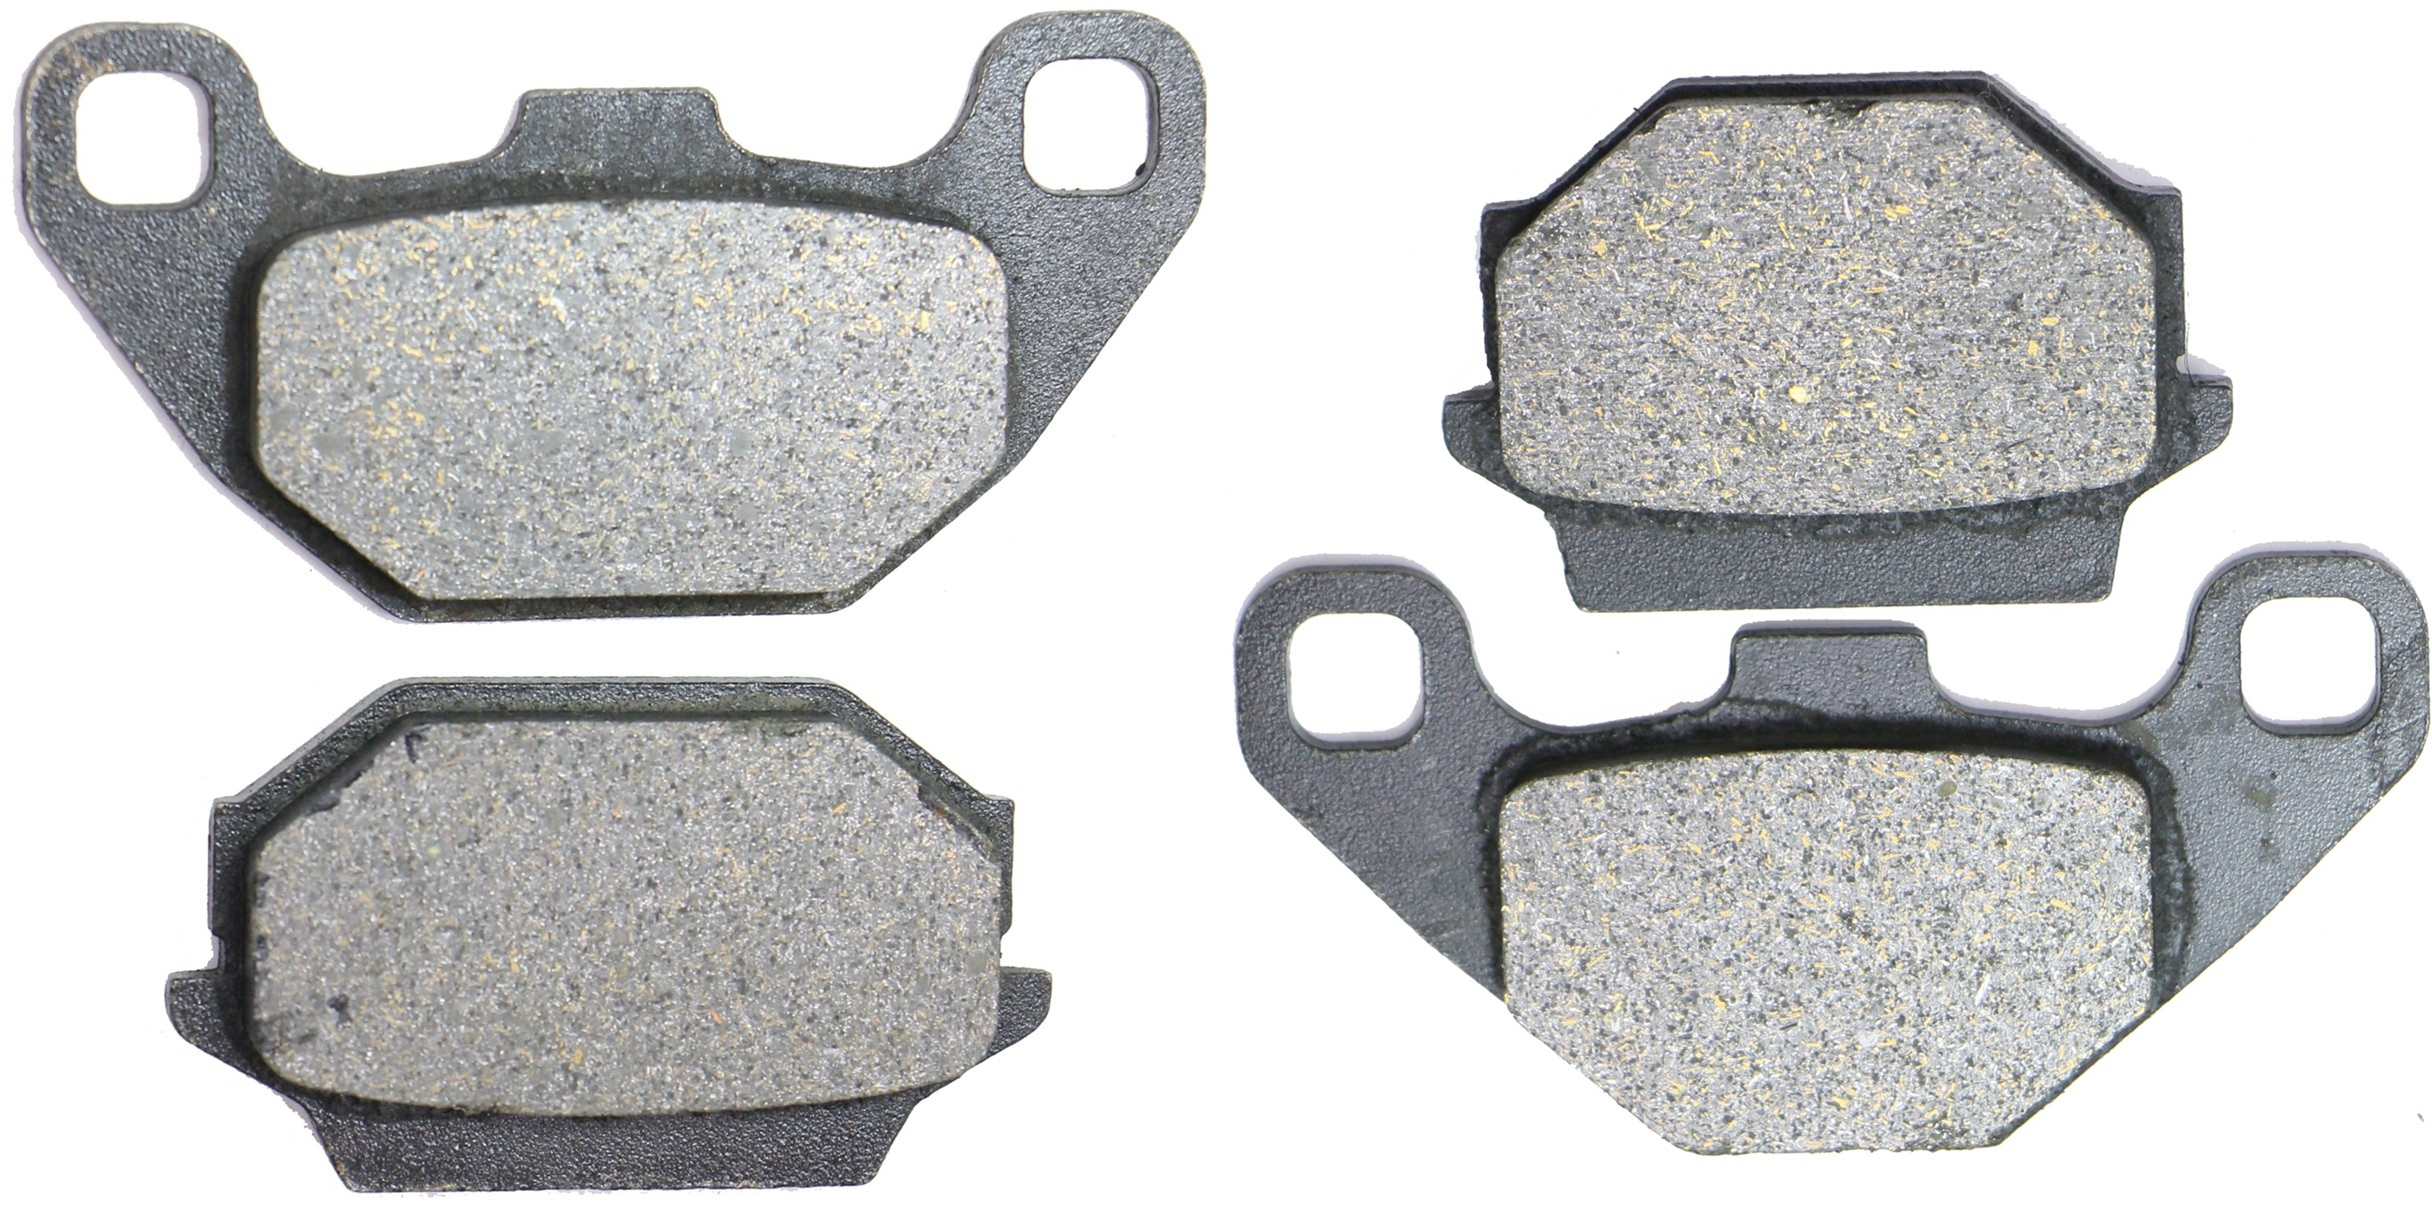 FRONT BRAKE PADS KYMCO Agility 125 City 2011 2012 2013